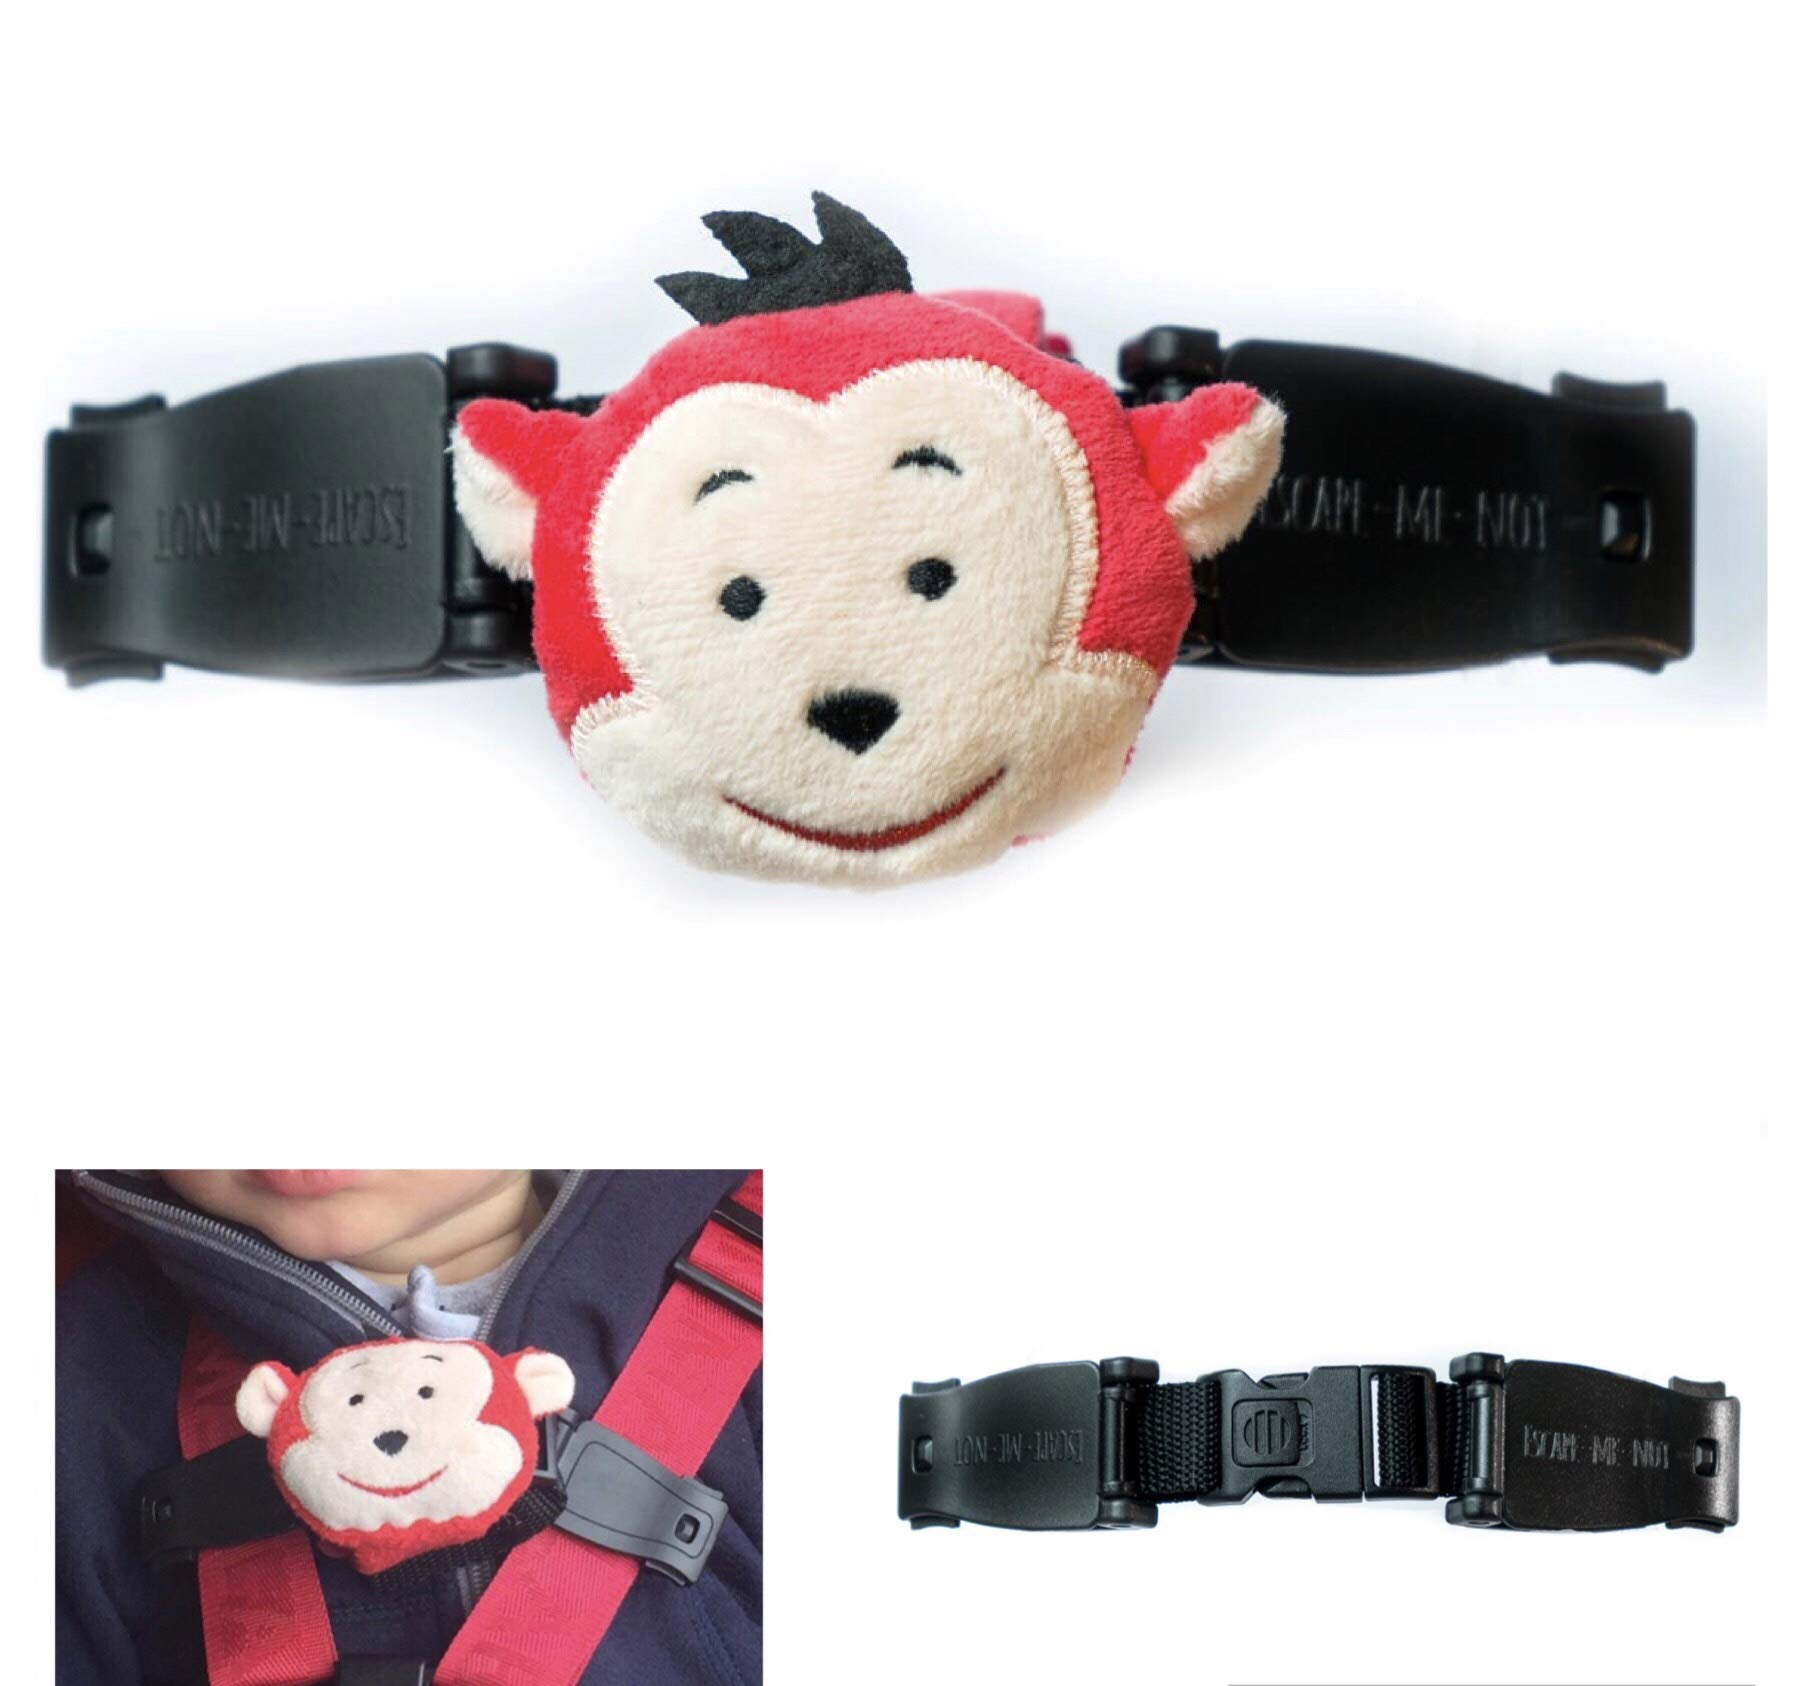 Car Seat Anti Escape Harness Chest Clip No Threading Required Helps Prevent Children Taking Their Arms Out Of The Straps